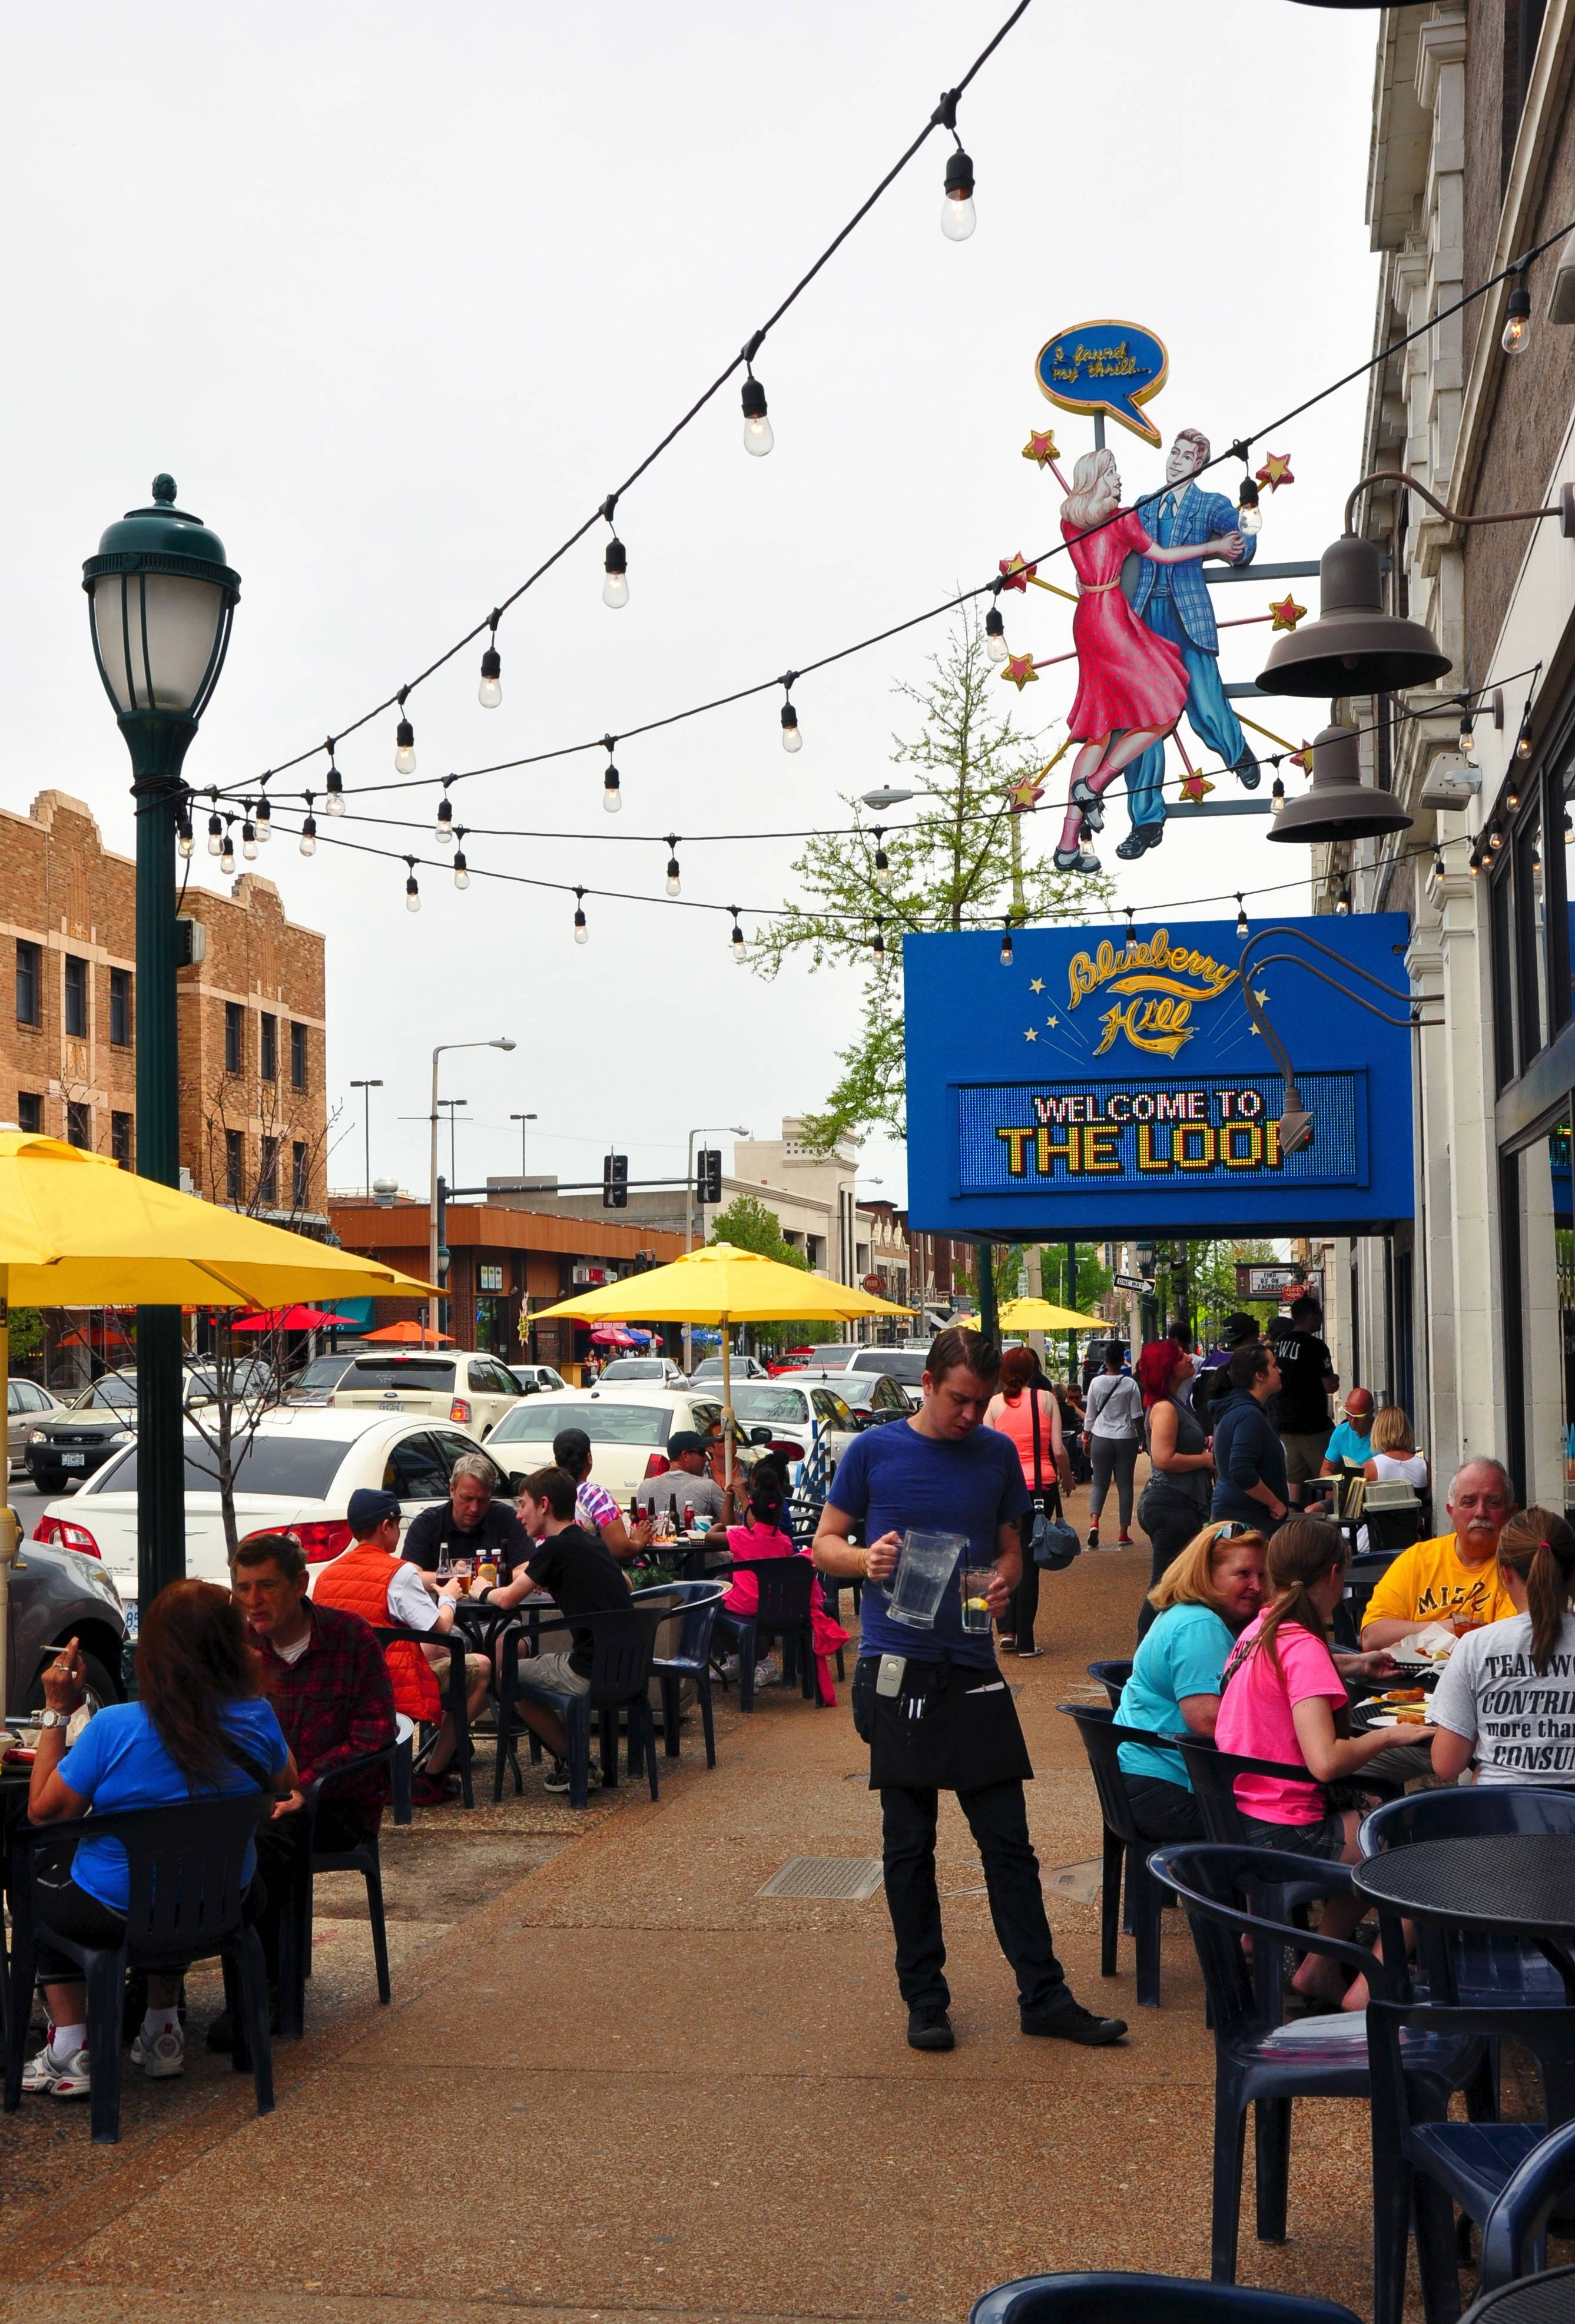 The opening of Blueberry Hill restaurant and music club sparked a revival of the Delmar Loop neighborhood.